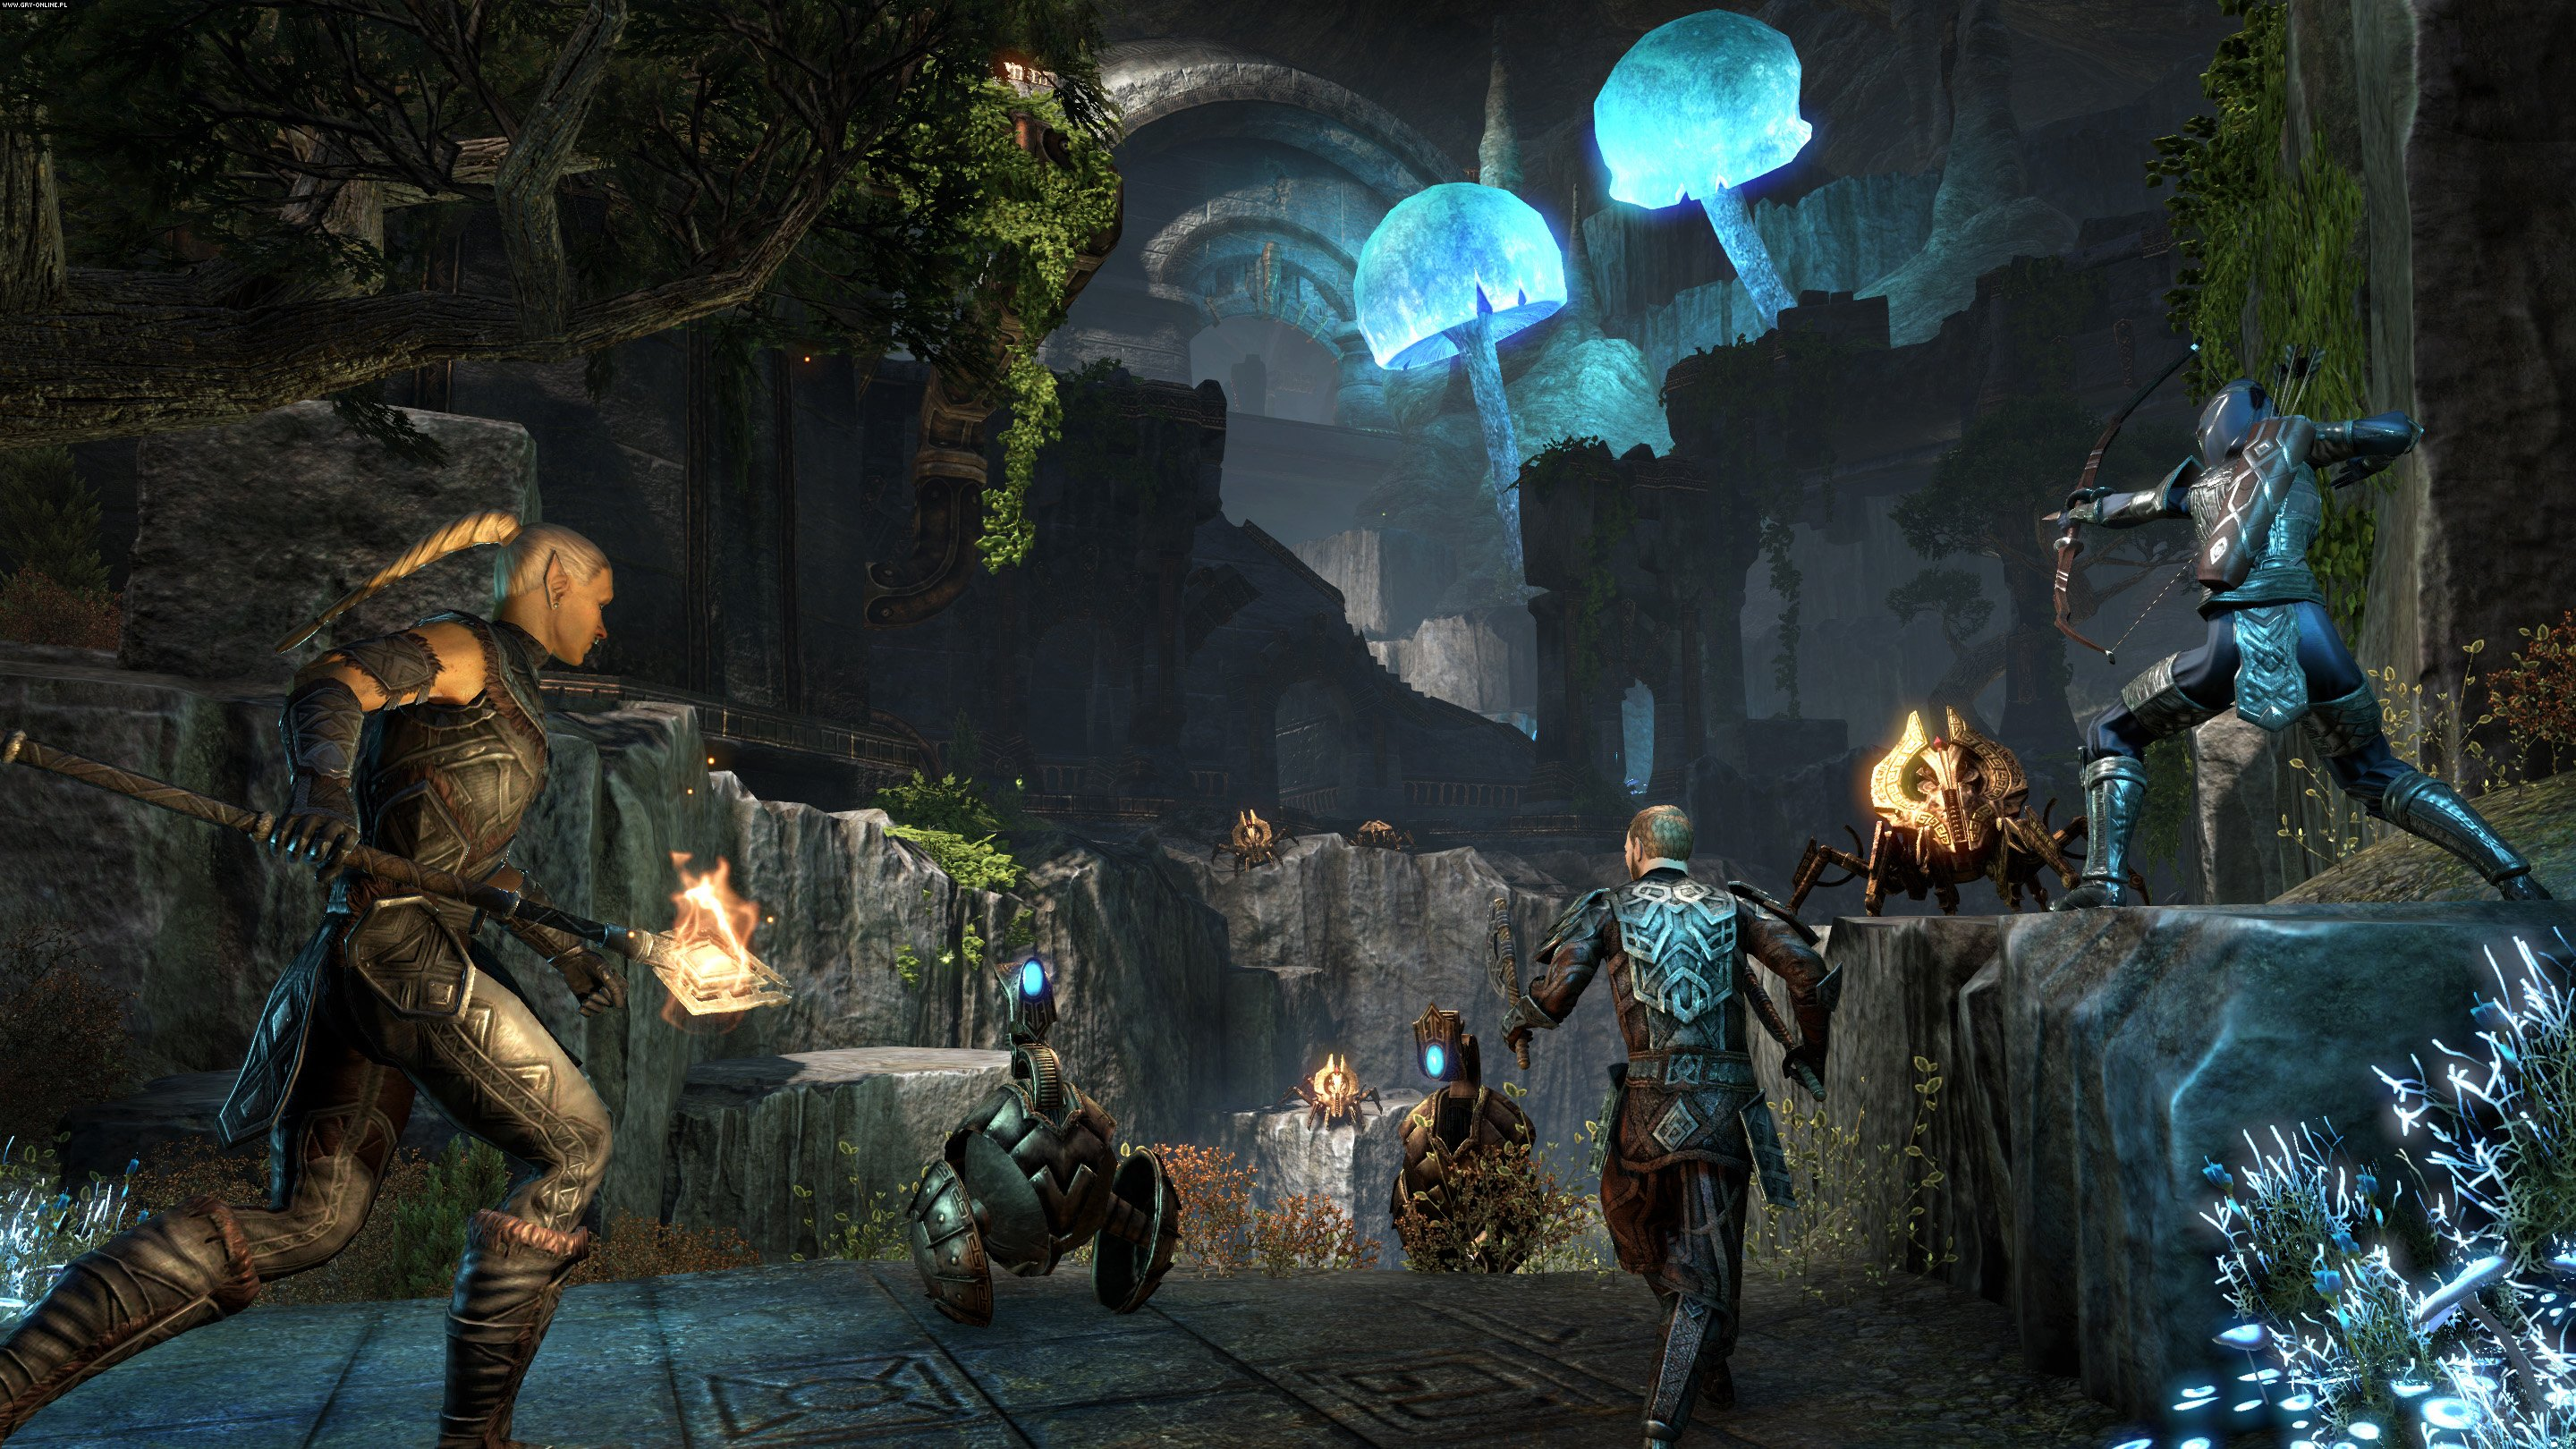 The Elder Scrolls Online: Tamriel Unlimited PC, PS4, XONE Games Image 20/104, ZeniMax Online Studios, Bethesda Softworks